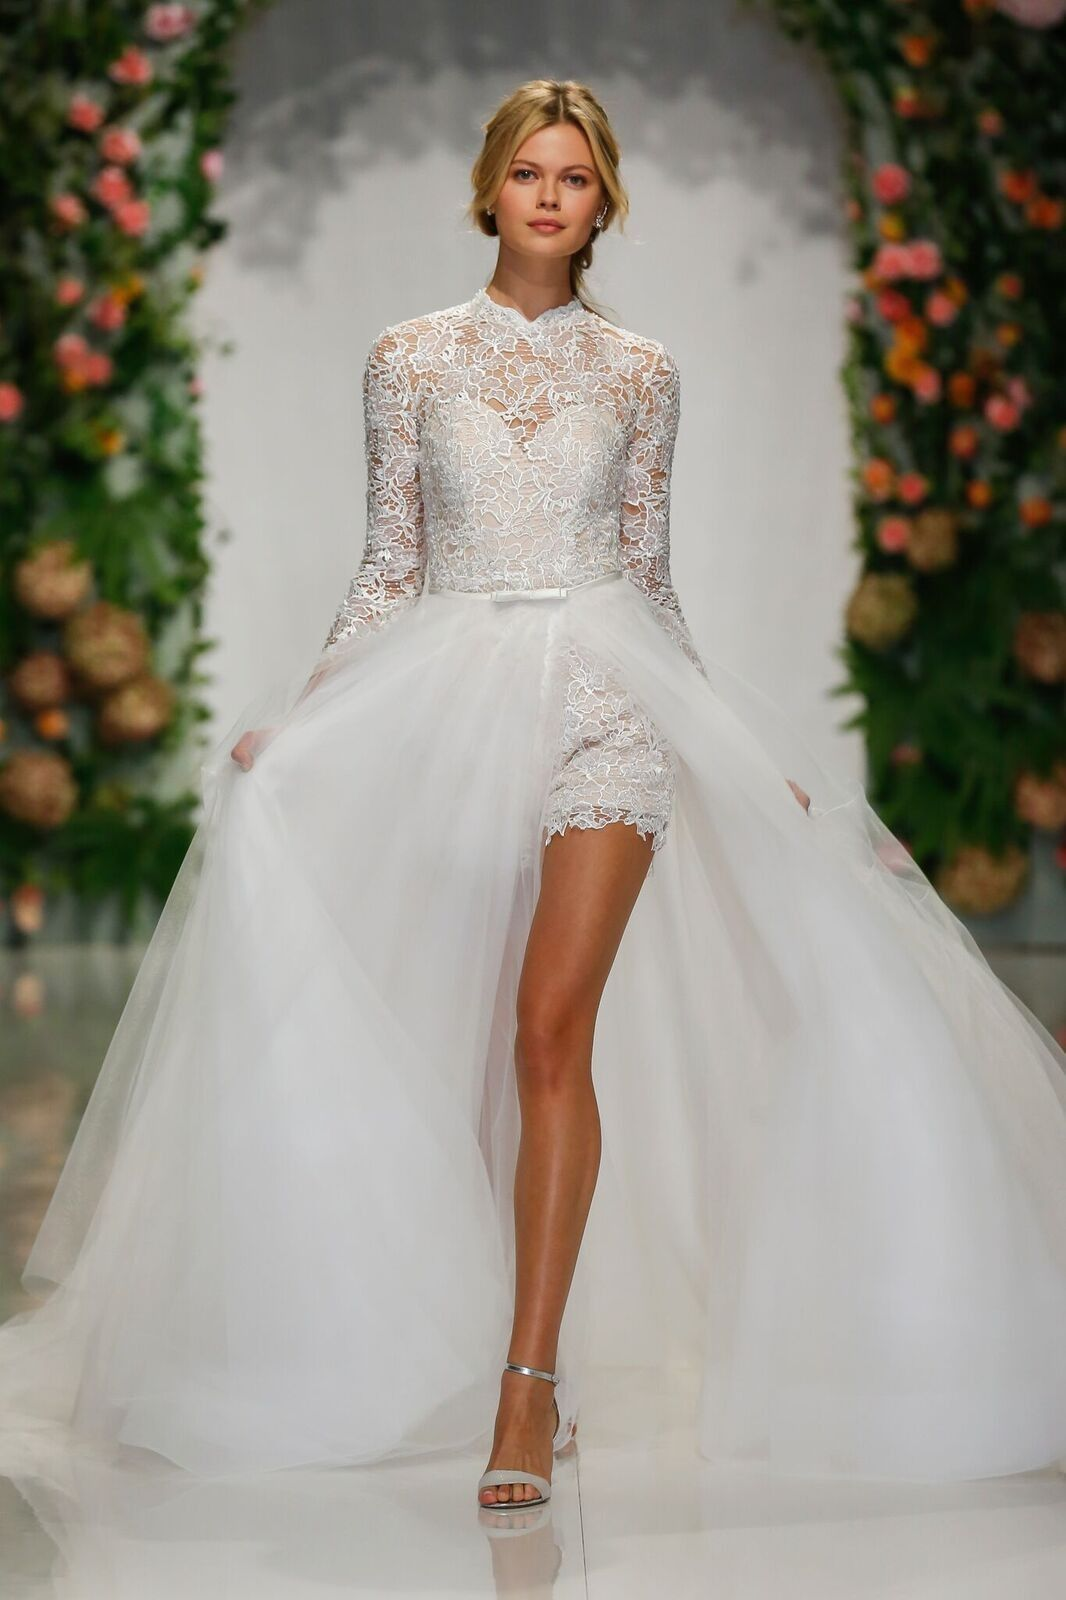 Jewish Wedding Designers Reimagine Traditional Gown – The Forward